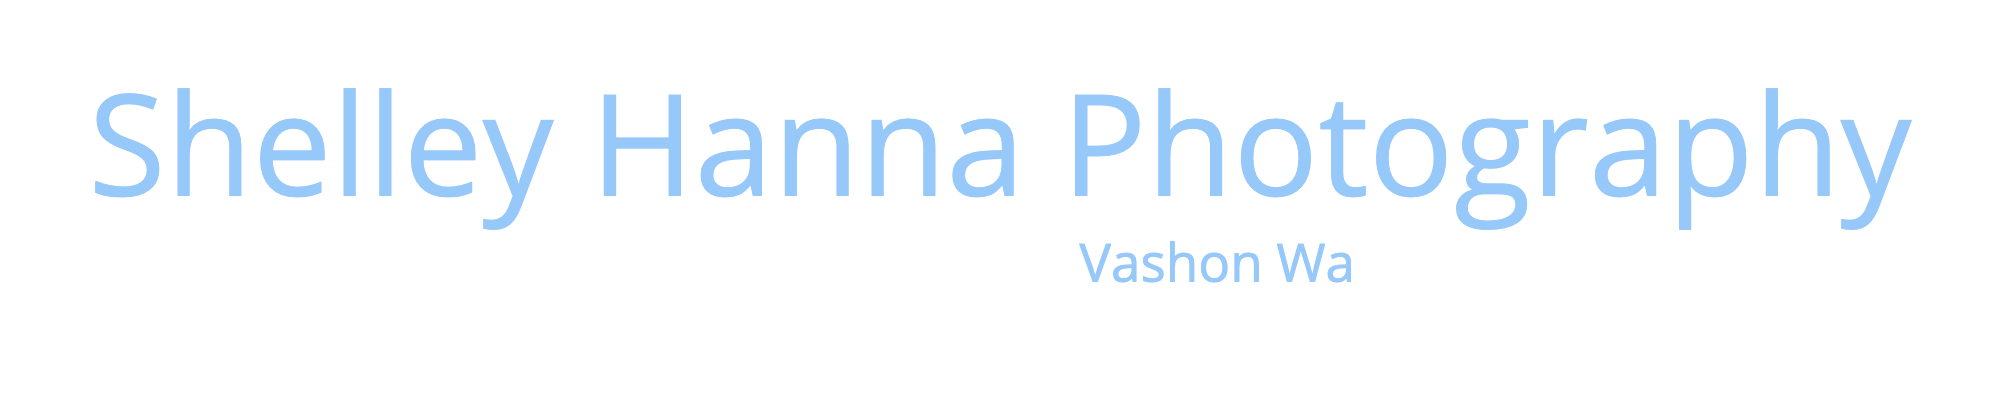 vashon photographer | shelley hanna